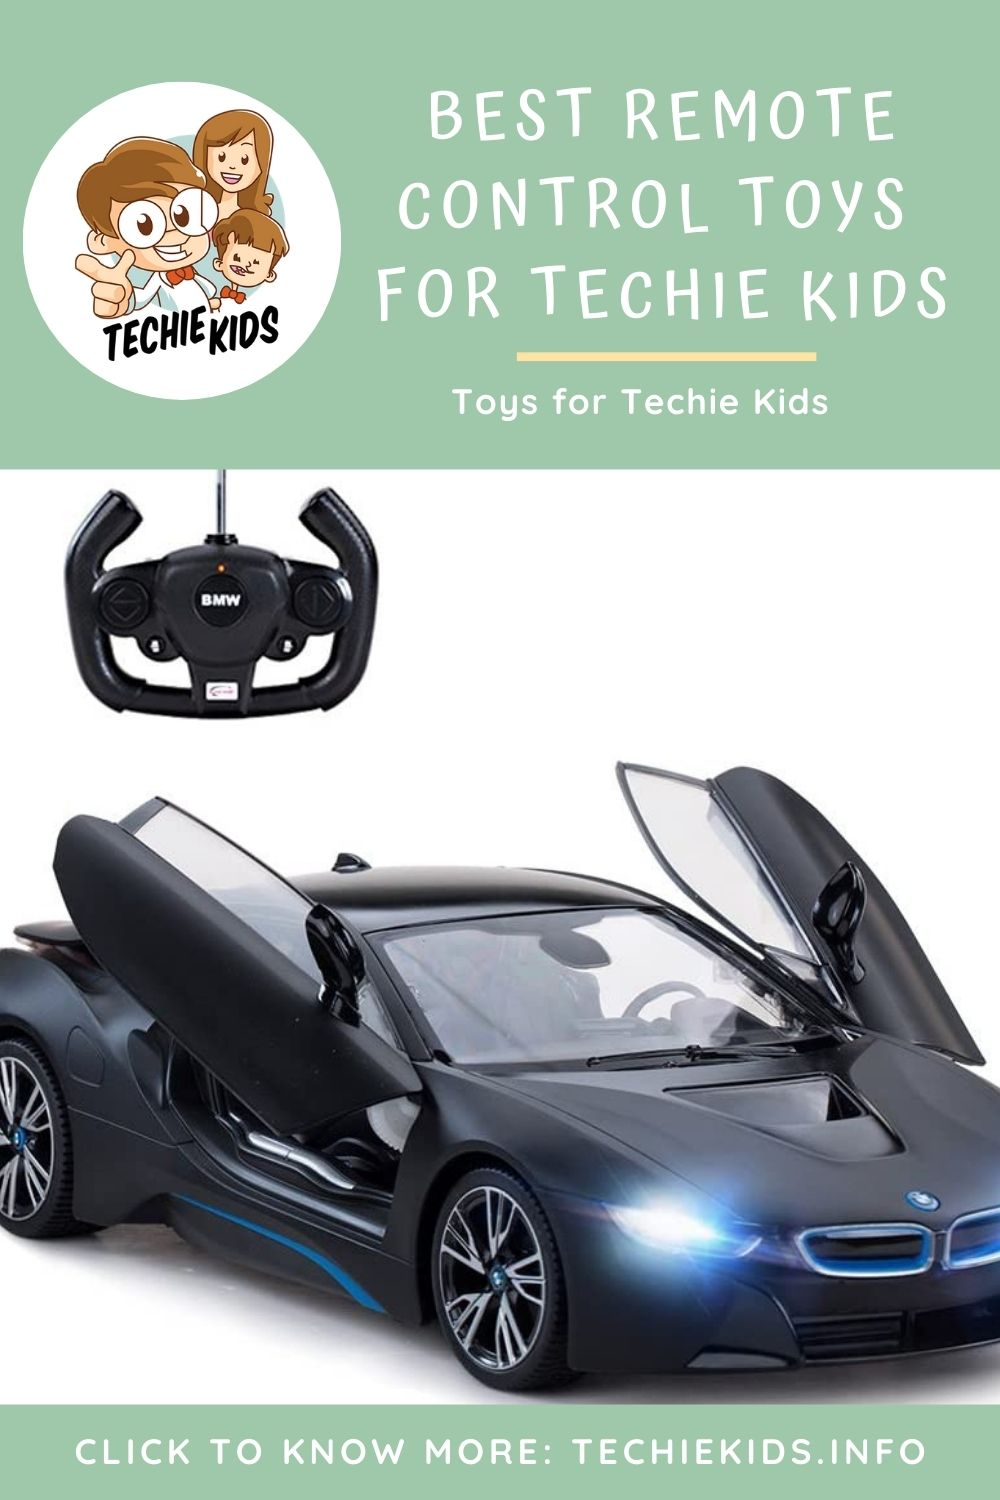 7 Best Remote Control Toys For Techie Kids